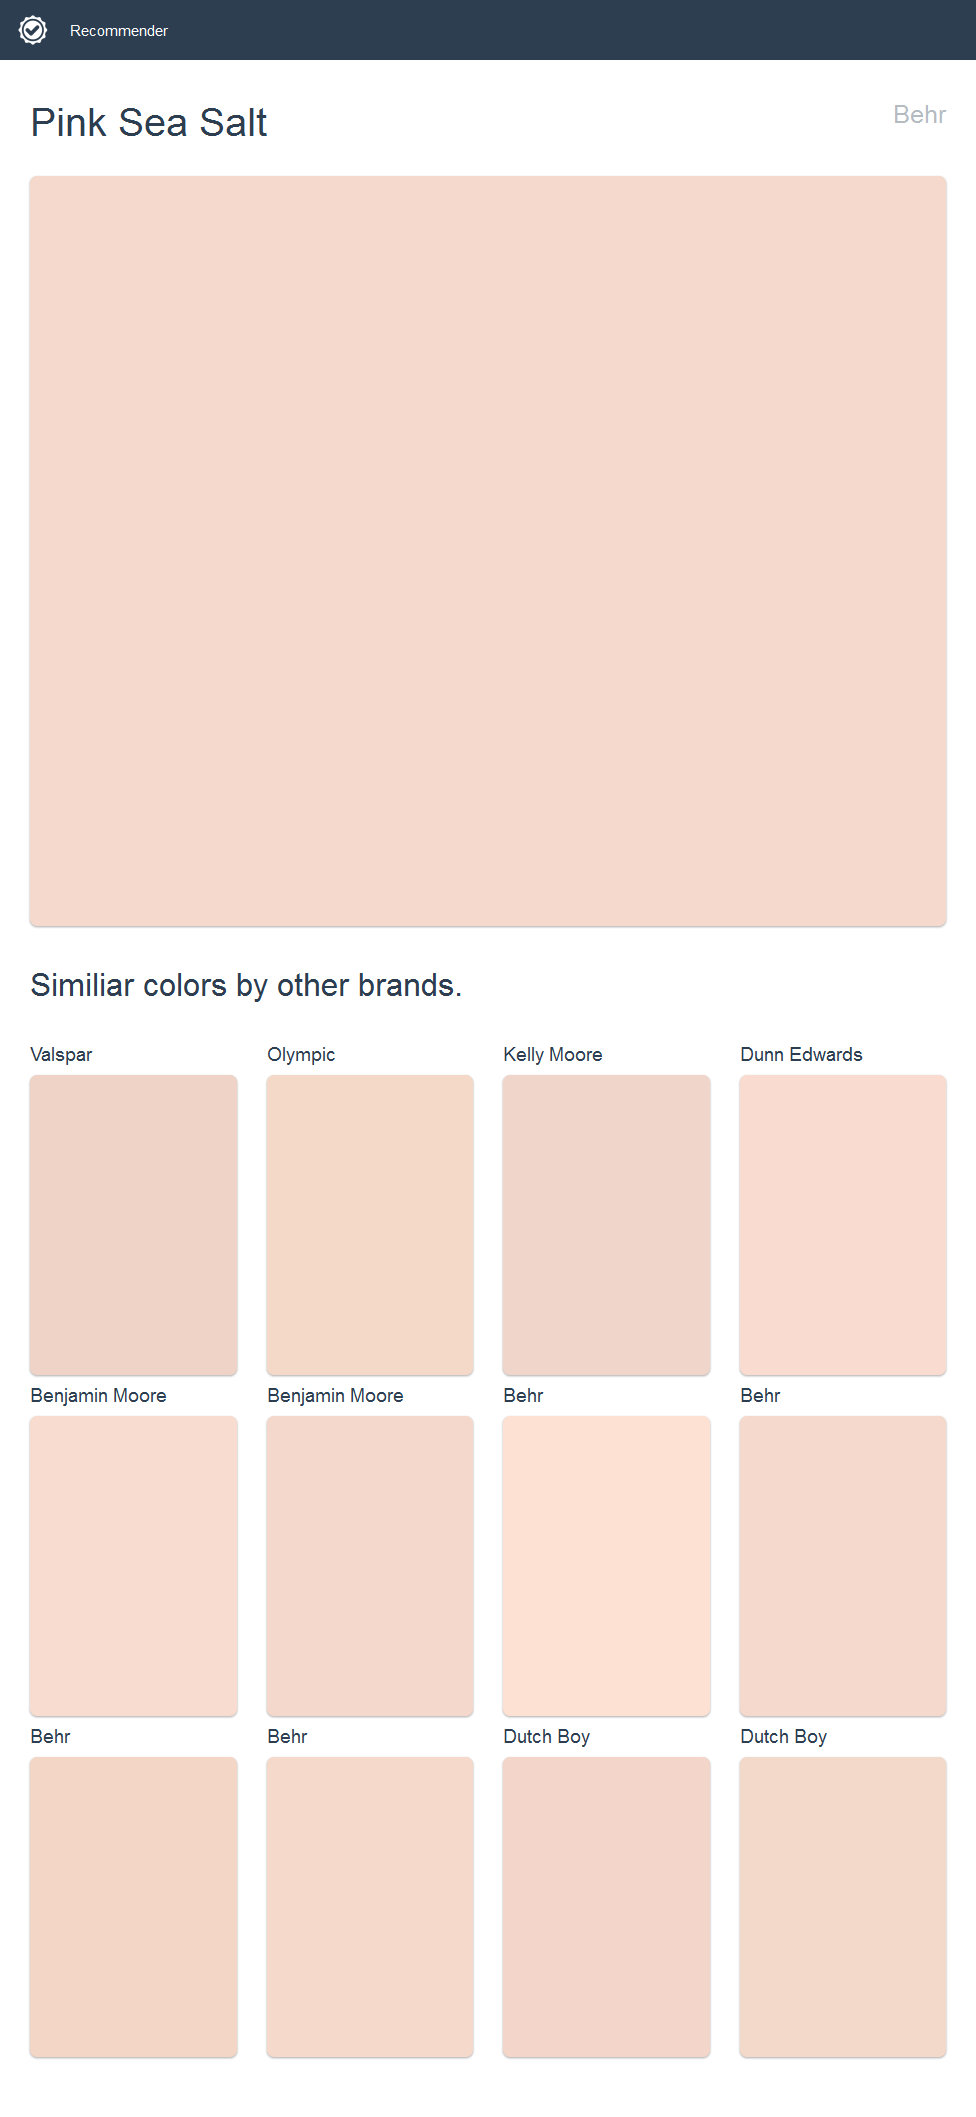 Pink Sea Salt Behr Click The Image To See Similiar Colors By Other Brands